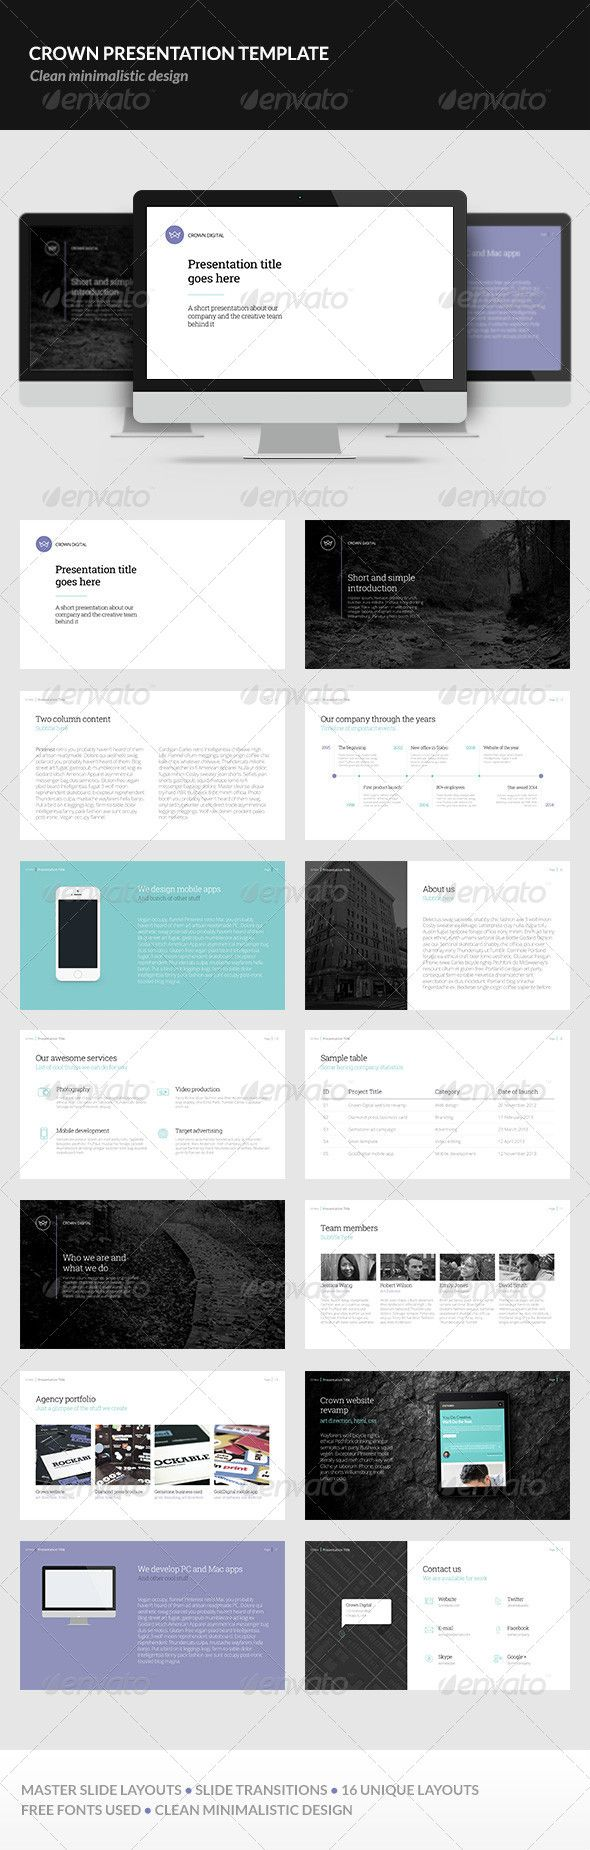 Crown Presentation Template